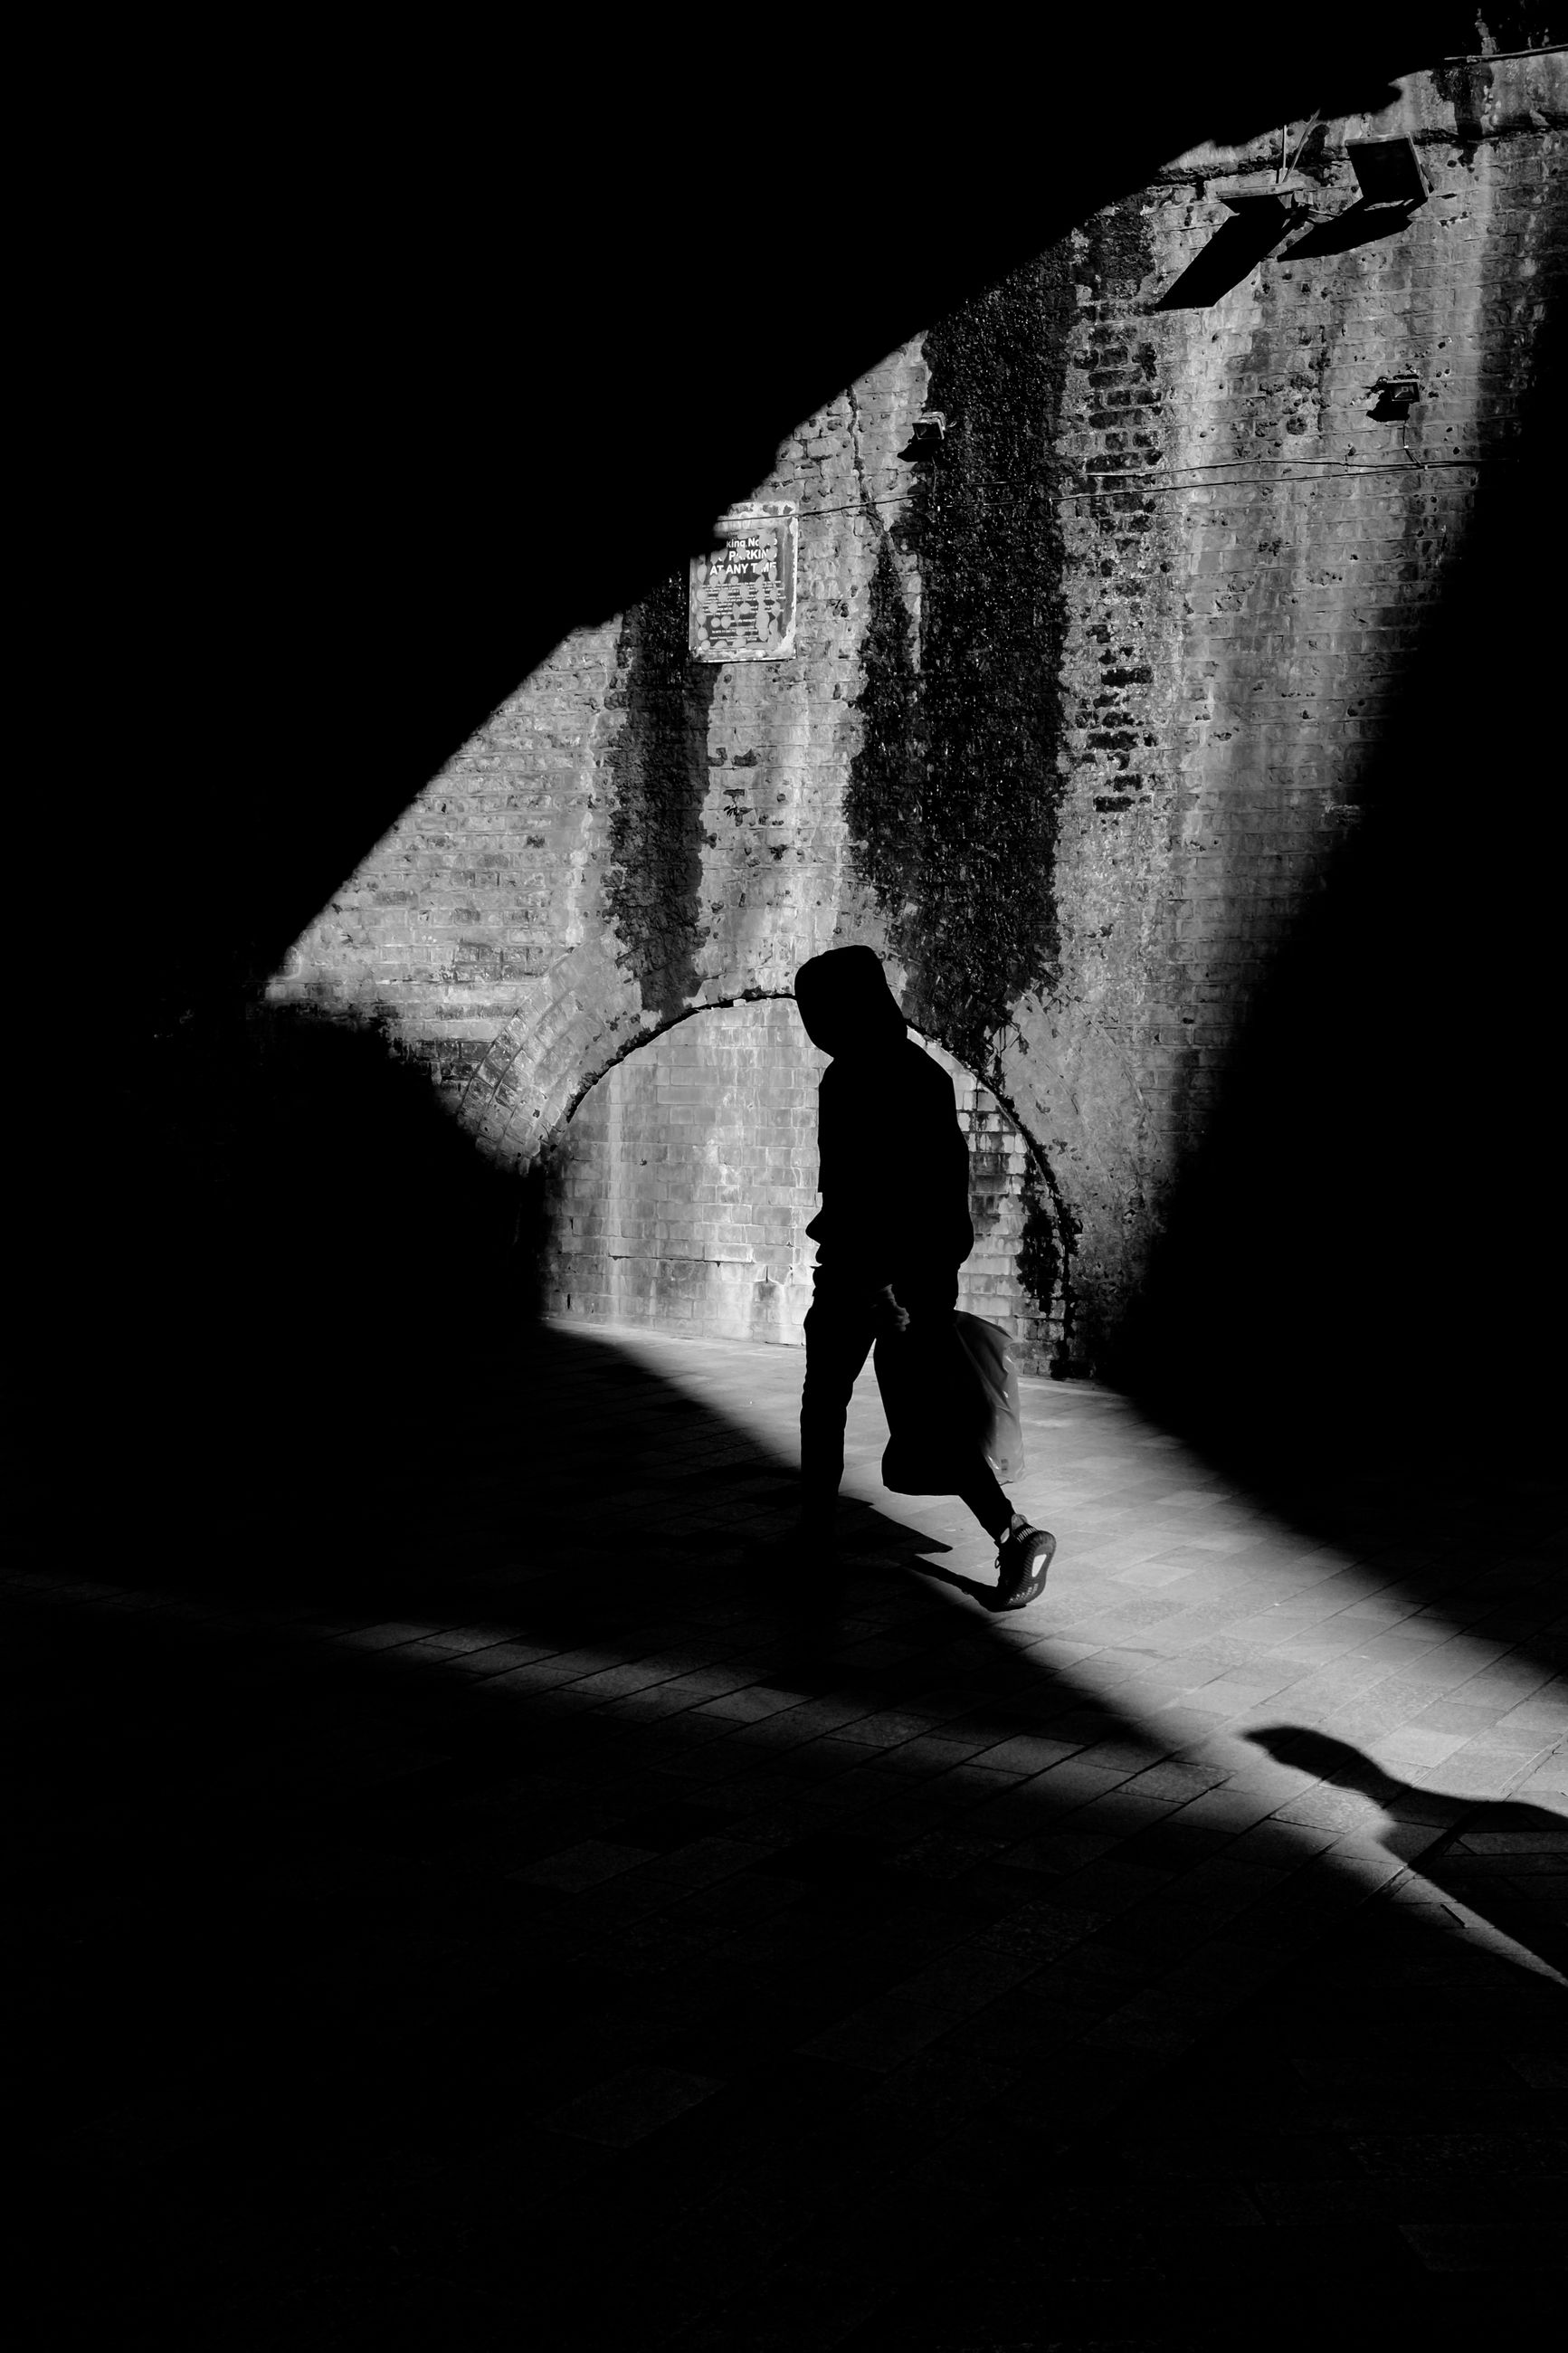 full length, real people, one person, walking, architecture, nature, day, lifestyles, shadow, the way forward, men, direction, rear view, sunlight, silhouette, tunnel, transportation, leisure activity, outdoors, light at the end of the tunnel